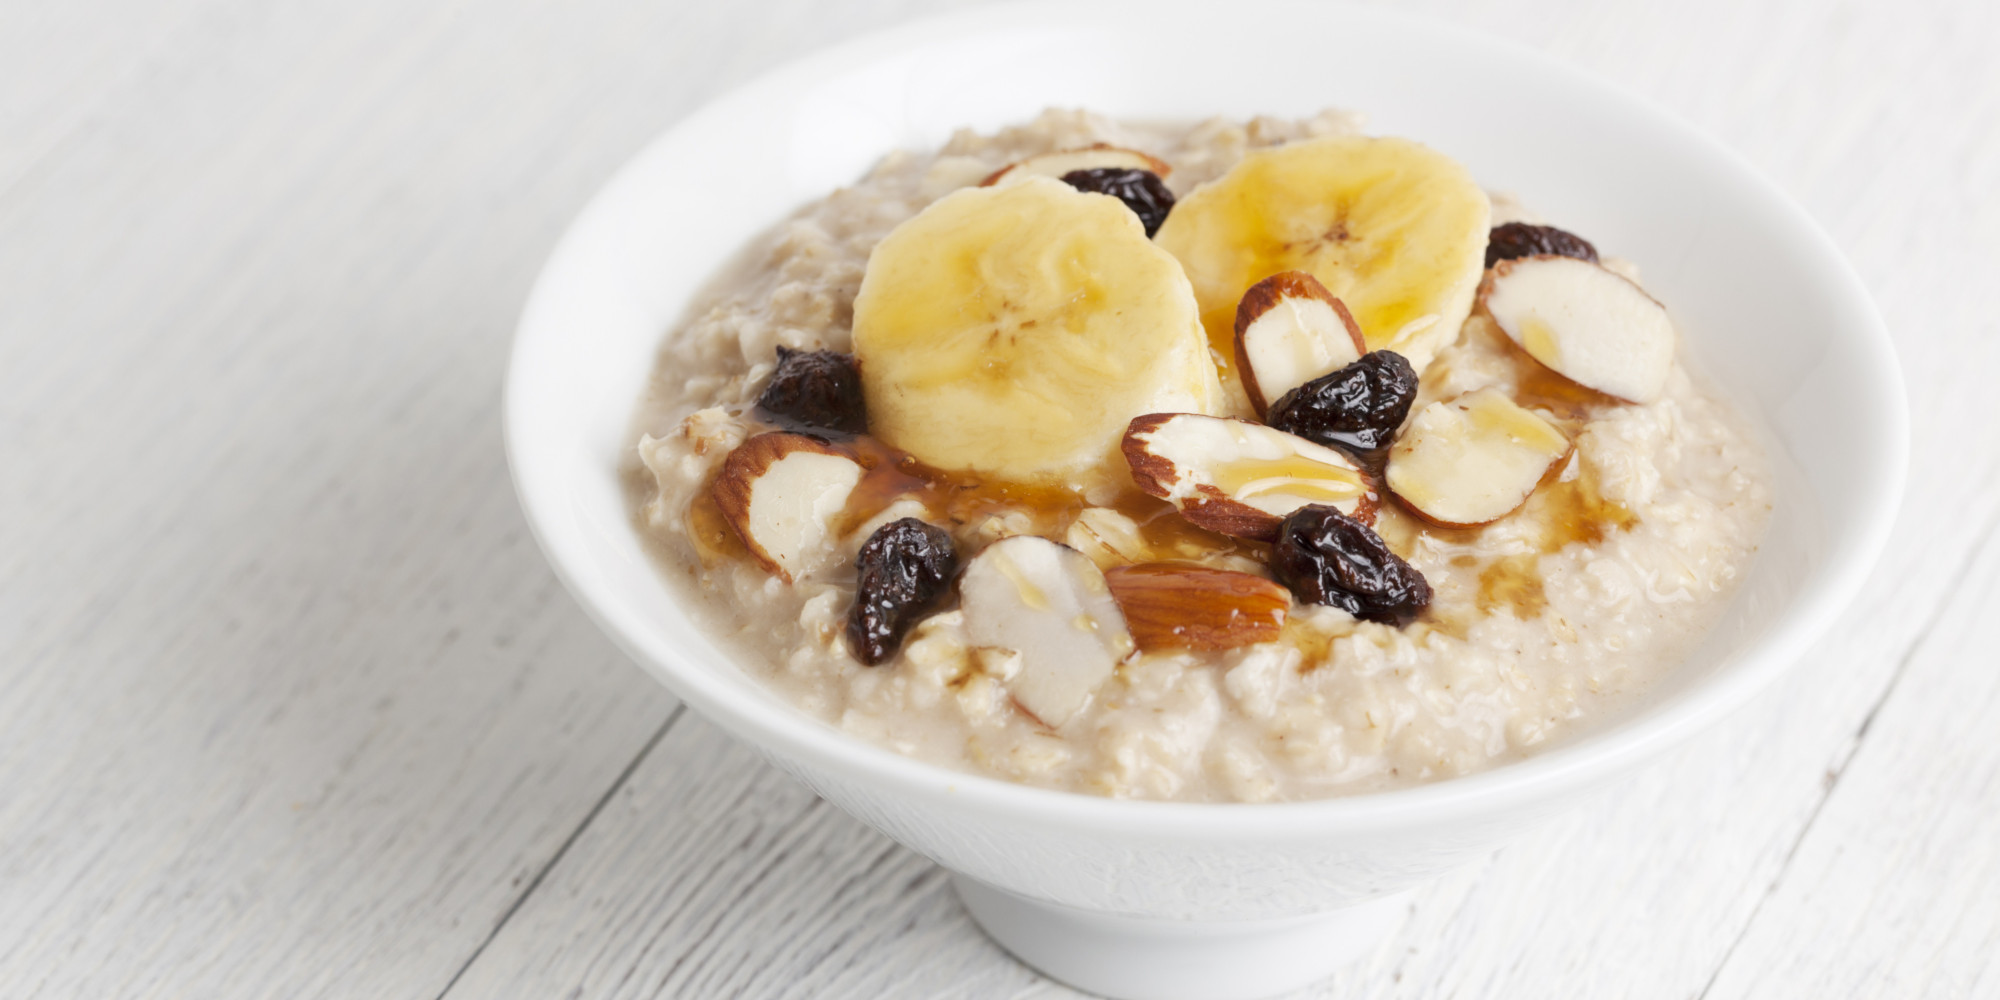 7 Healthy Oatmeal And Yogurt Toppings To Try Today | HuffPost